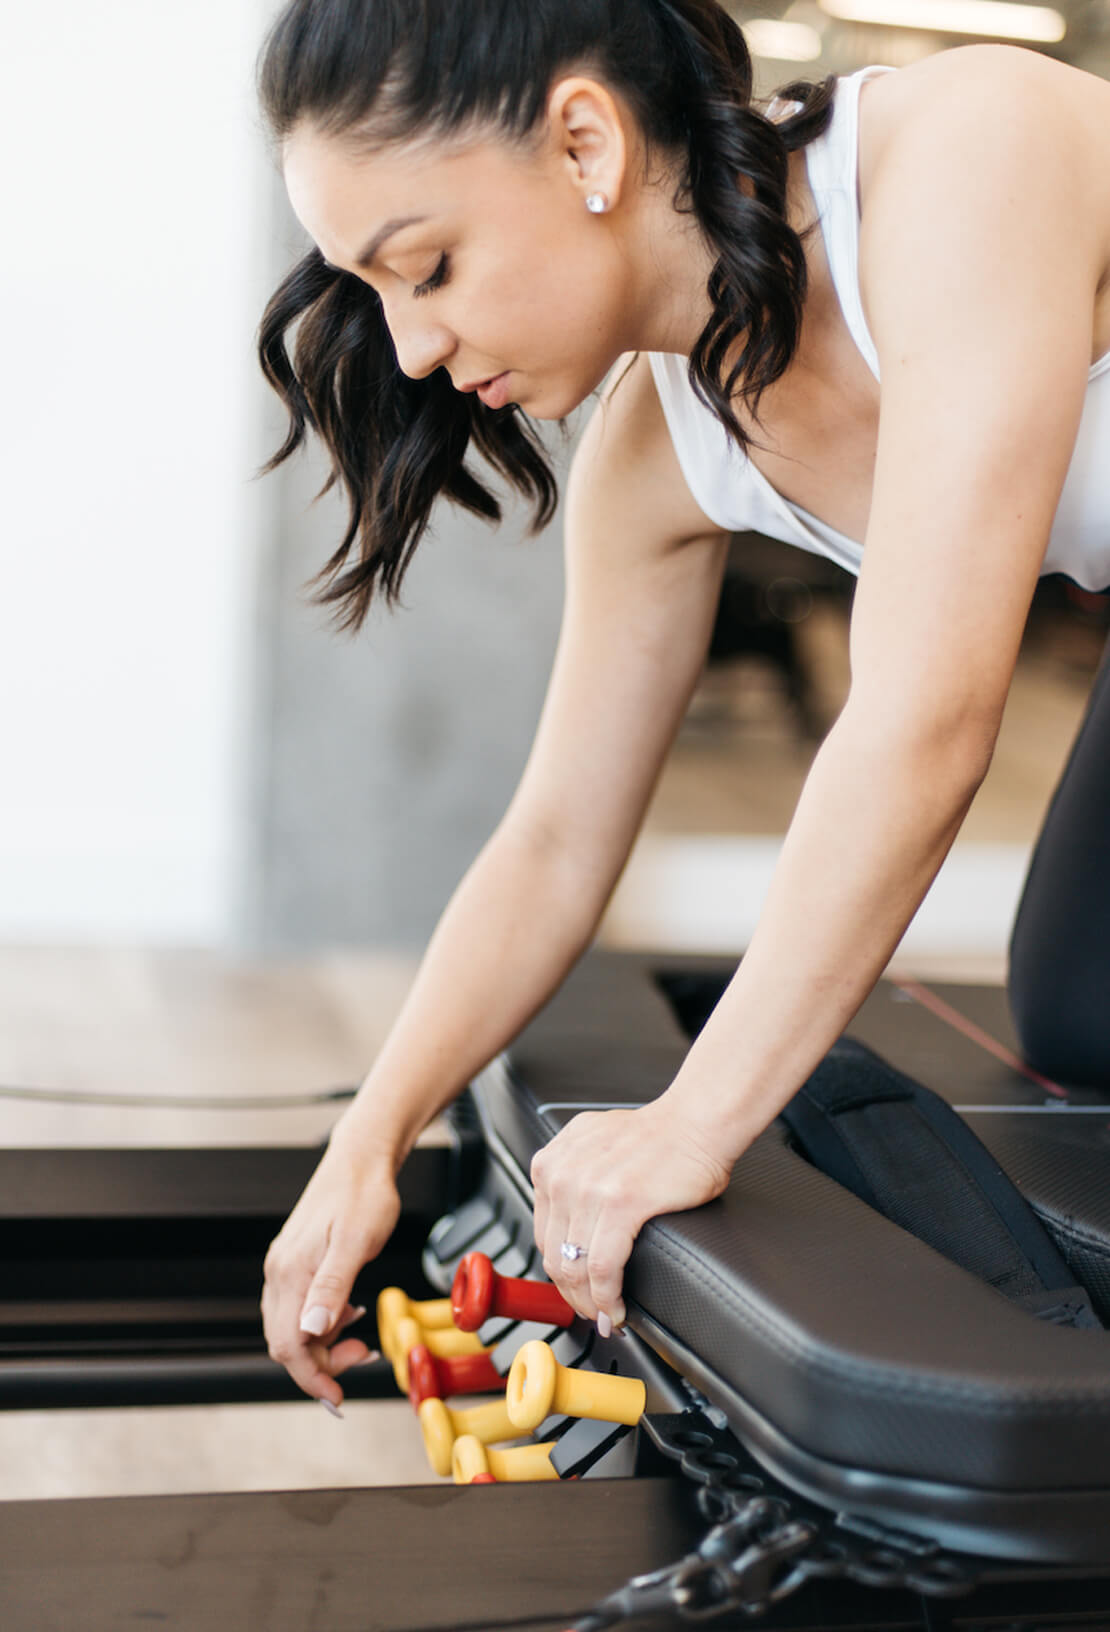 Lagree Fit 415 teaches Lagree fitness. Lagree Fitness is a high intensity, low impact, core, muscular strength, and muscular endurance workout adaptable to all fitness levels.